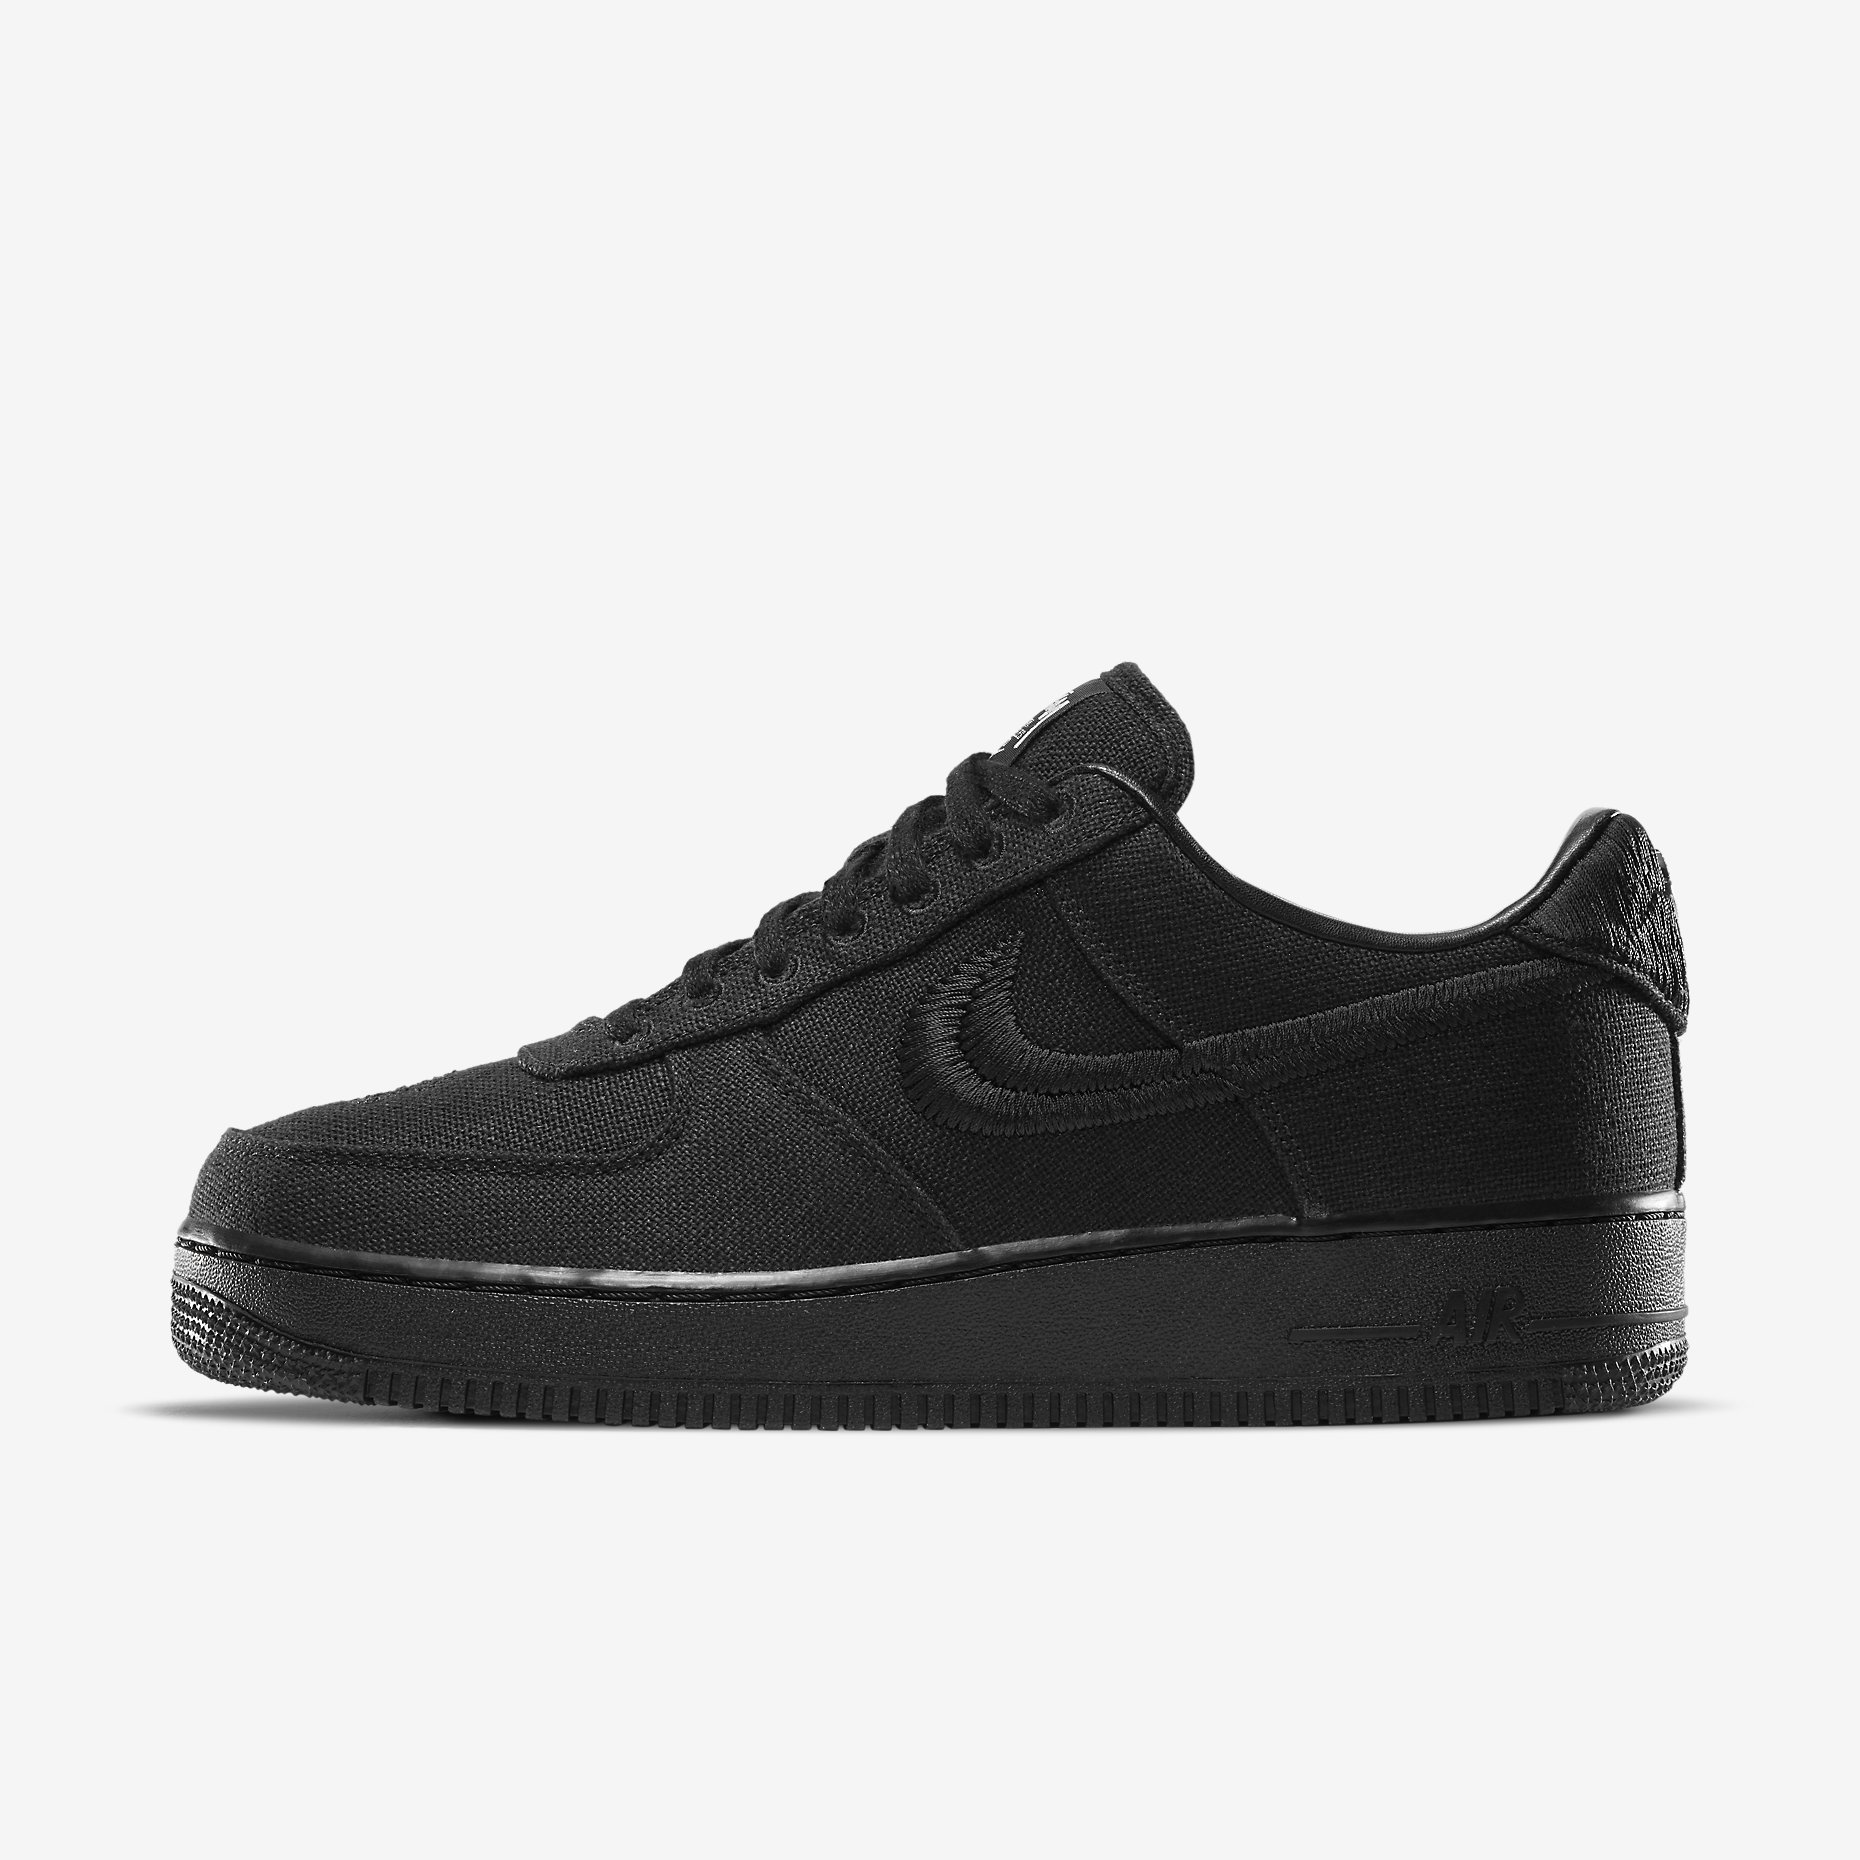 Stussy x Nike Air Force 1 Low 'Triple Black'}